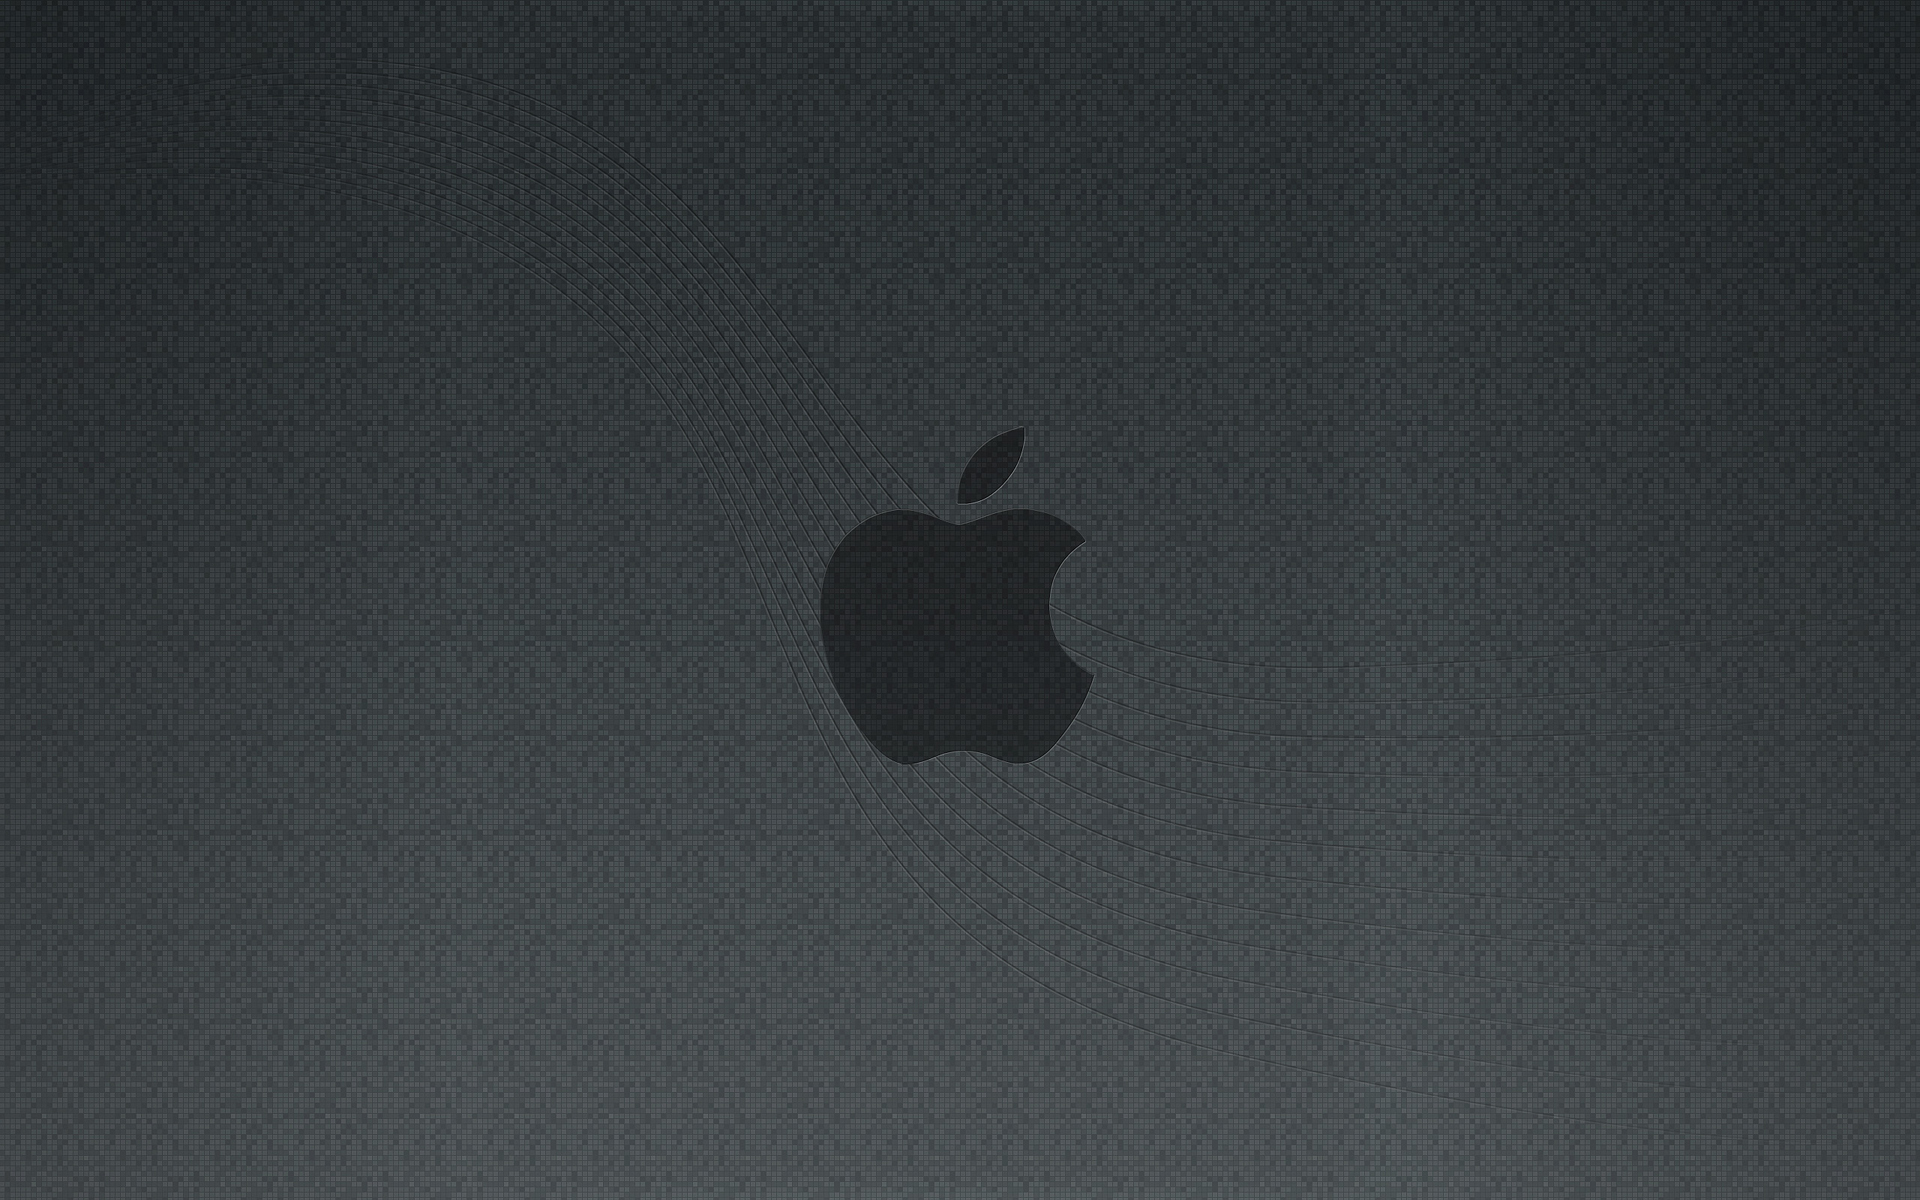 Stylish branded wallpaper from Apple